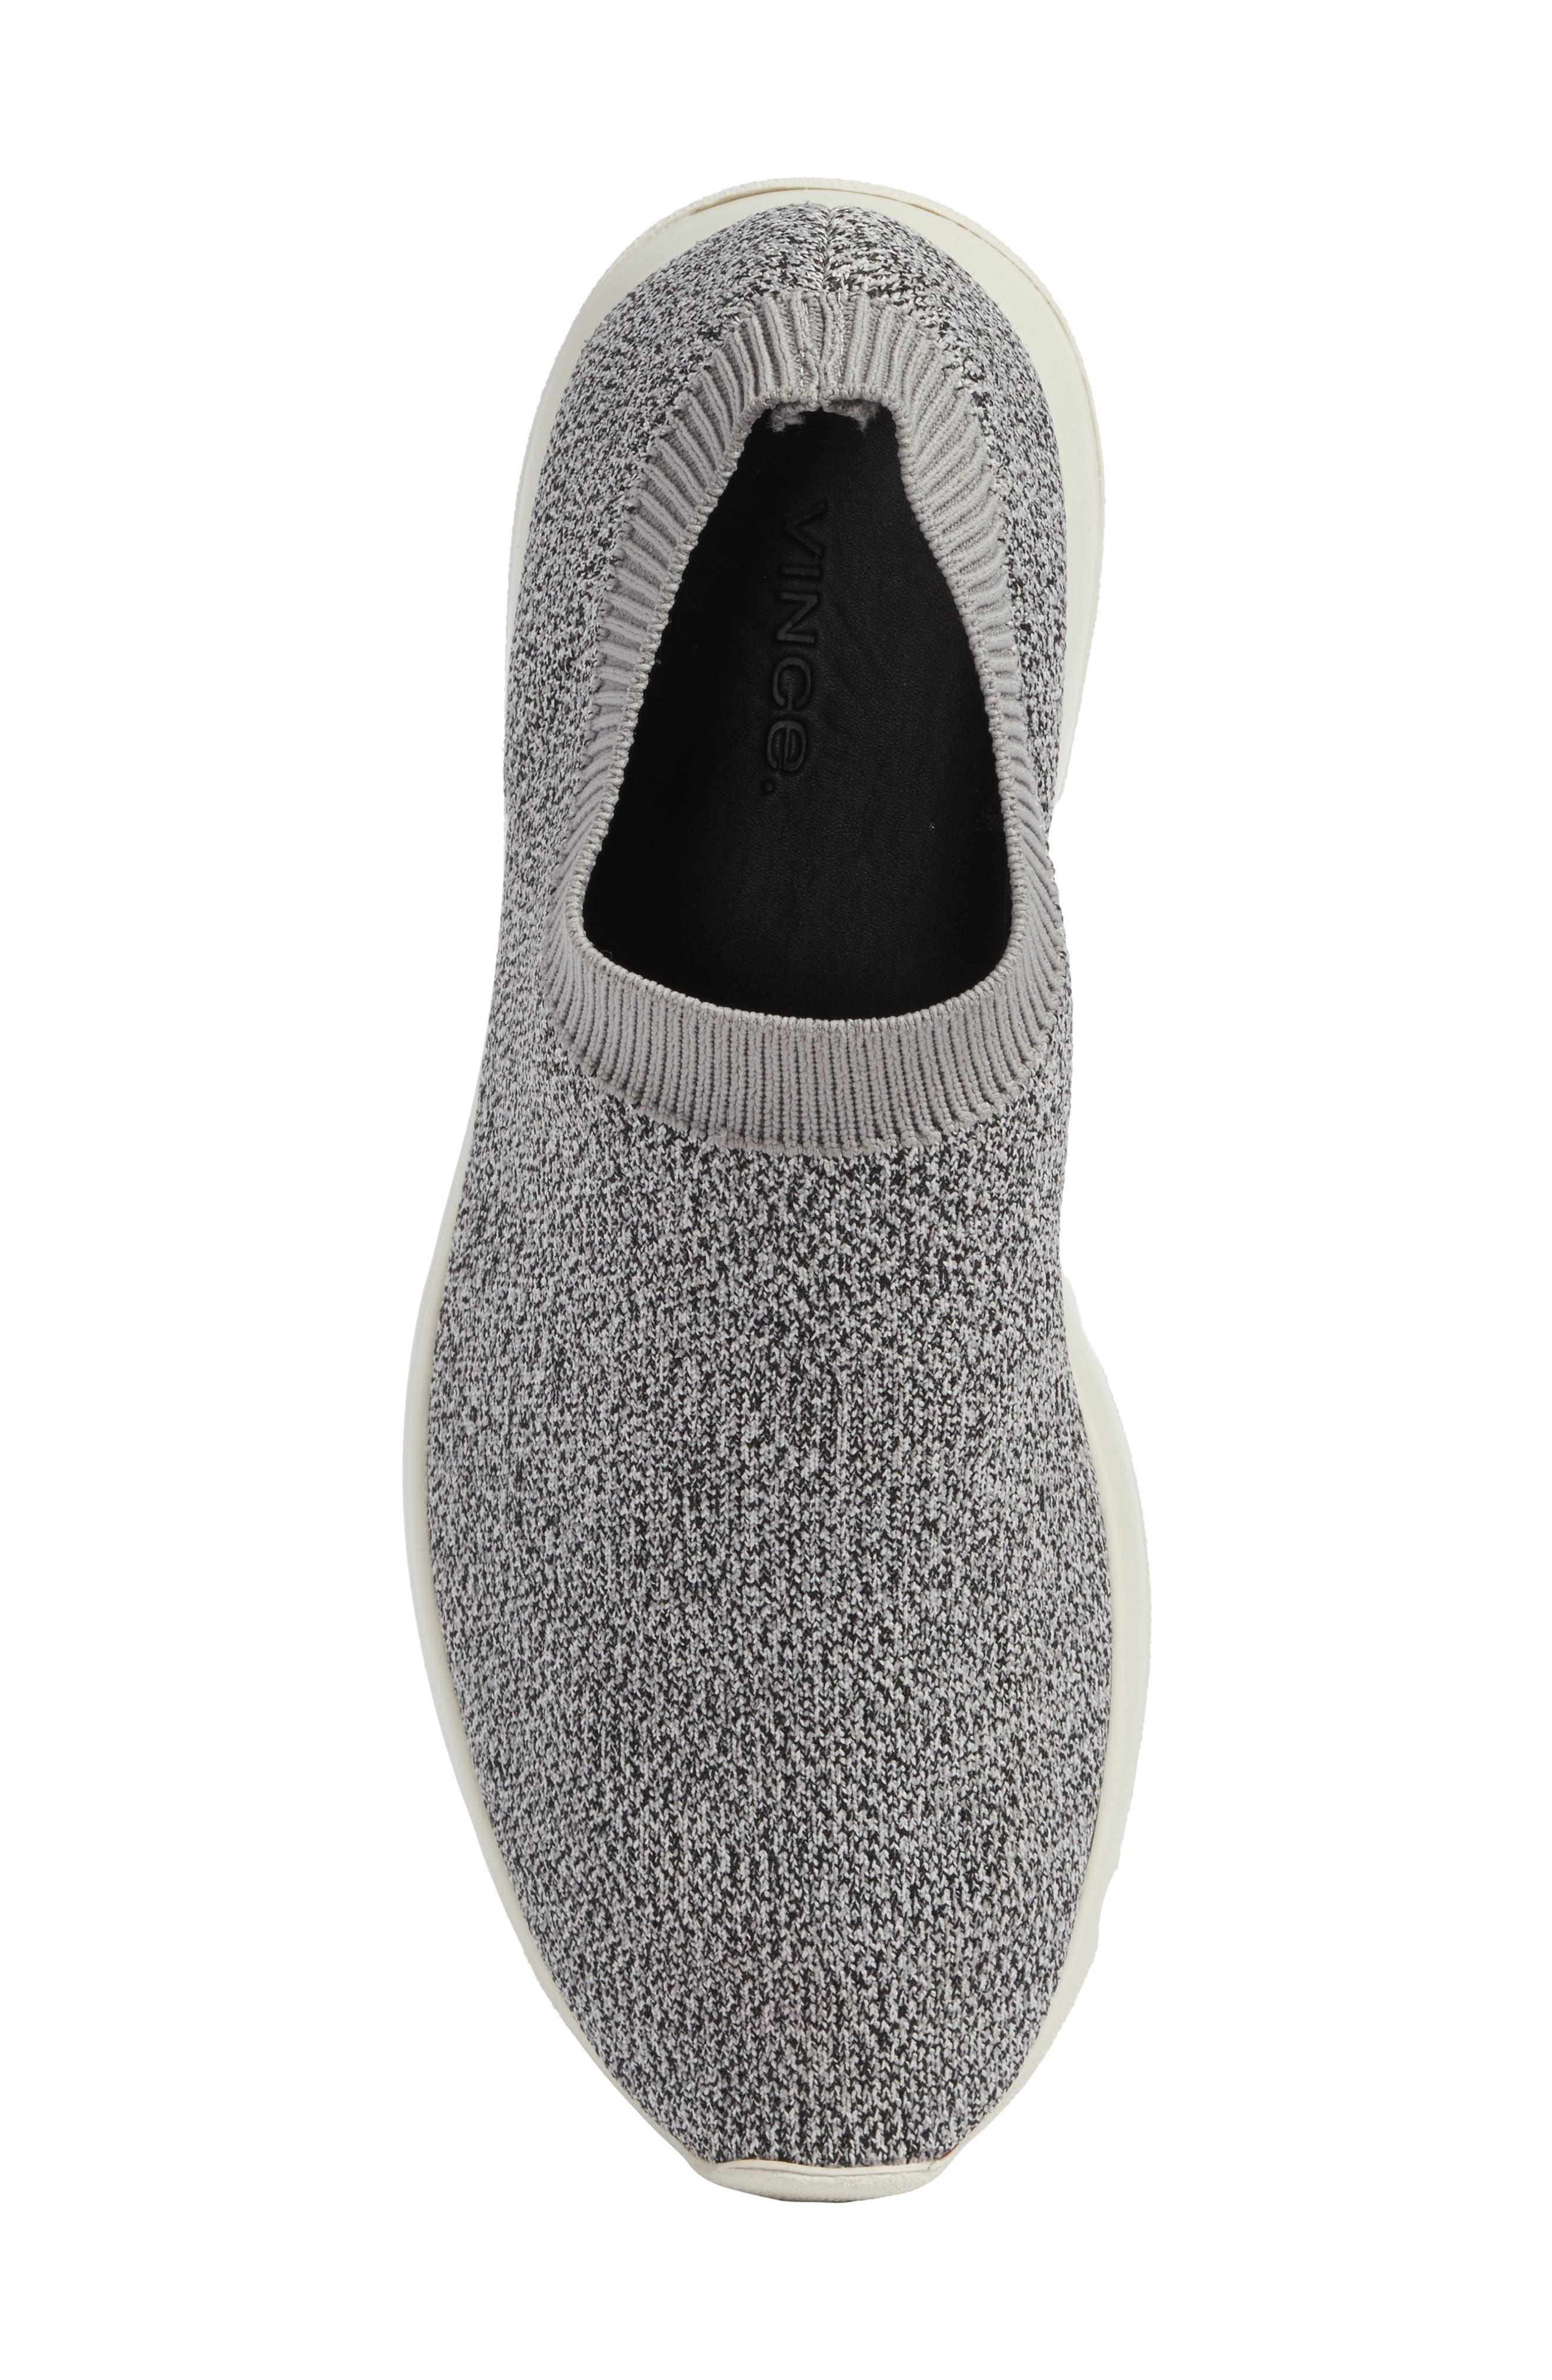 Theroux Slip-On Knit Sneaker,                             Alternate thumbnail 14, color,